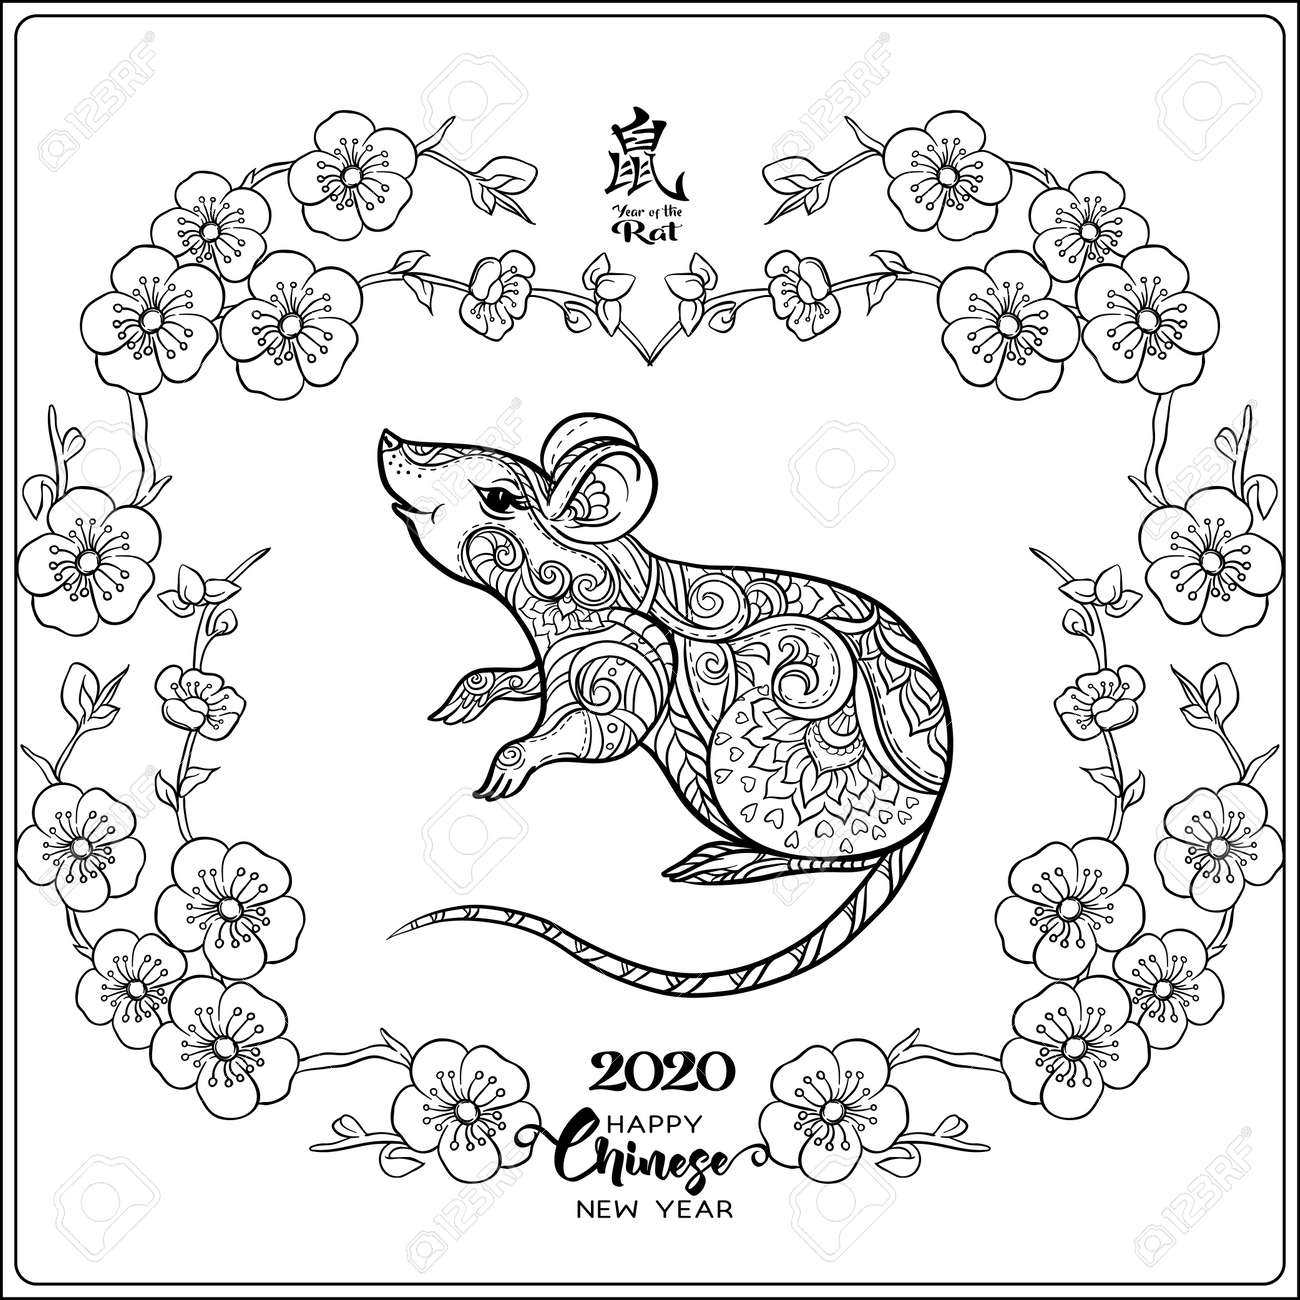 Mouse Rat Coloring Page For The Adult Coloring Book Chinese Royalty Free Cliparts Vectors And Stock Illustration Image 133160801